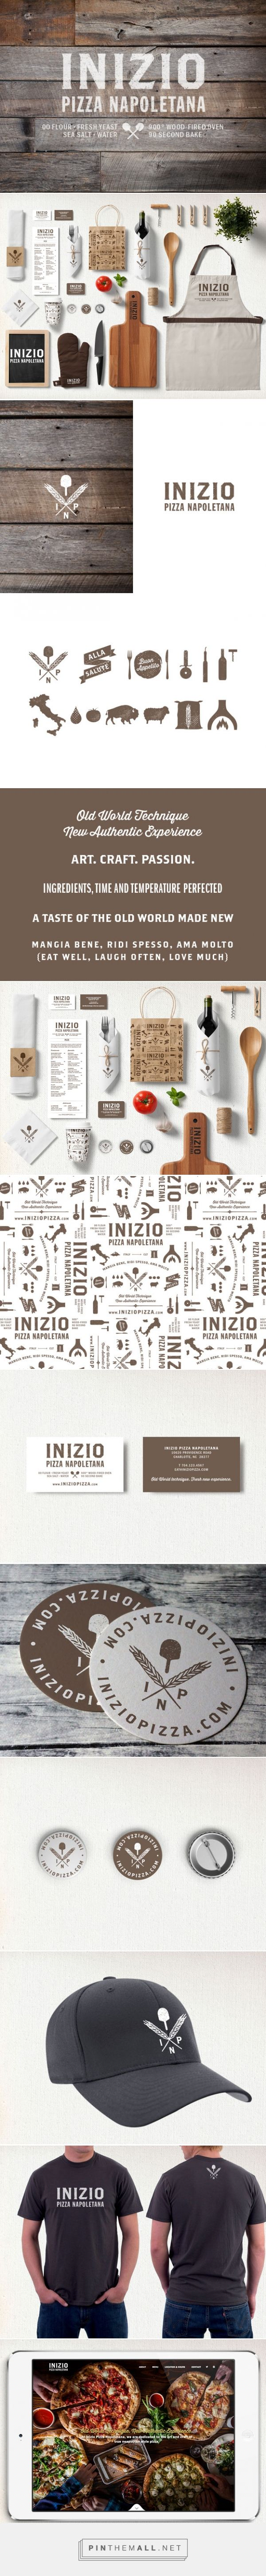 Inizio Pizza branding, logo design, packaging, marketing collateral and website design by Rachel Martin Design